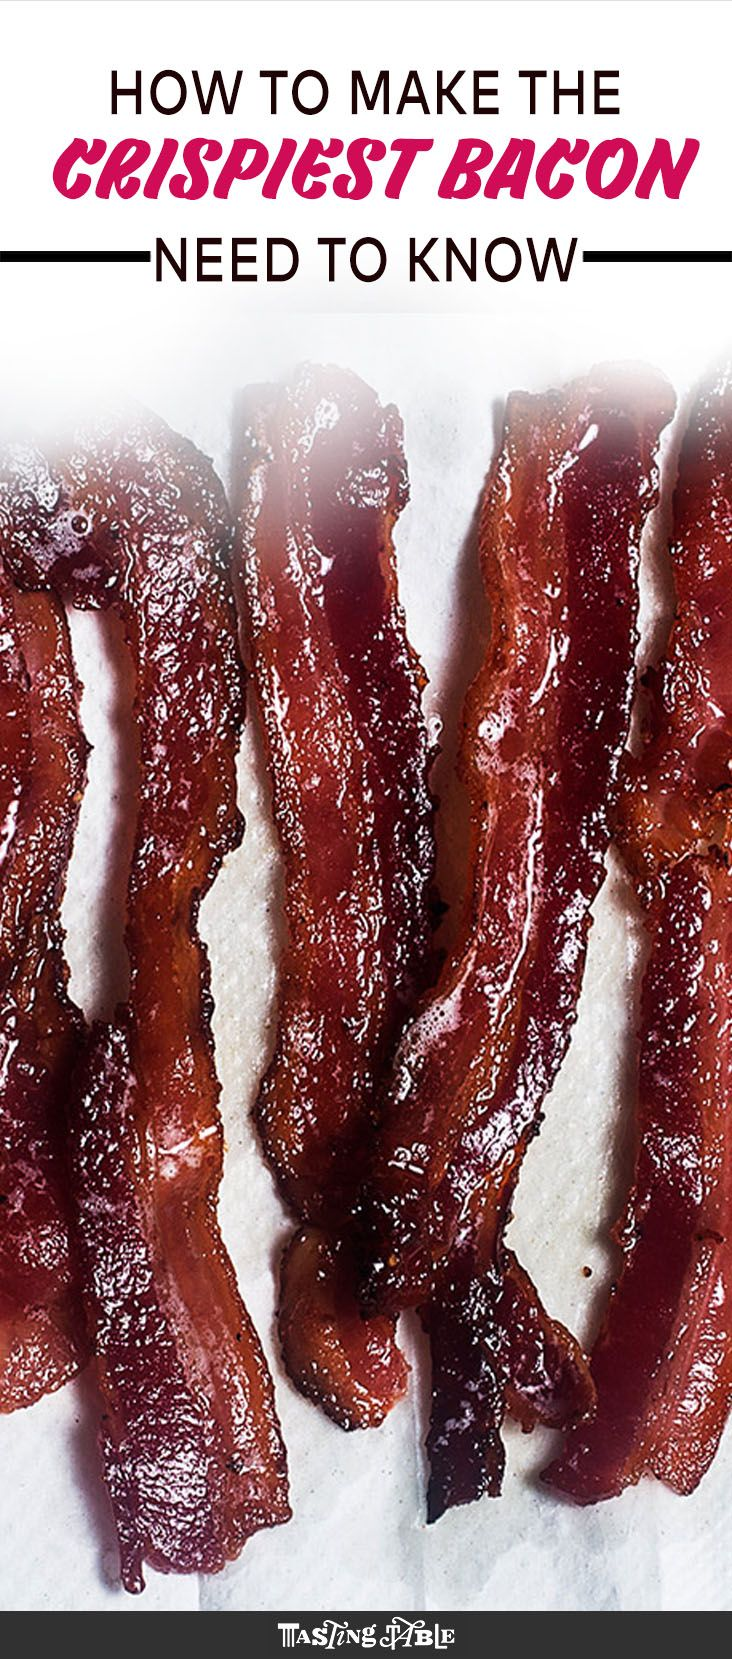 How to Make the Crispiest Bacon | The Best Recipes Ever